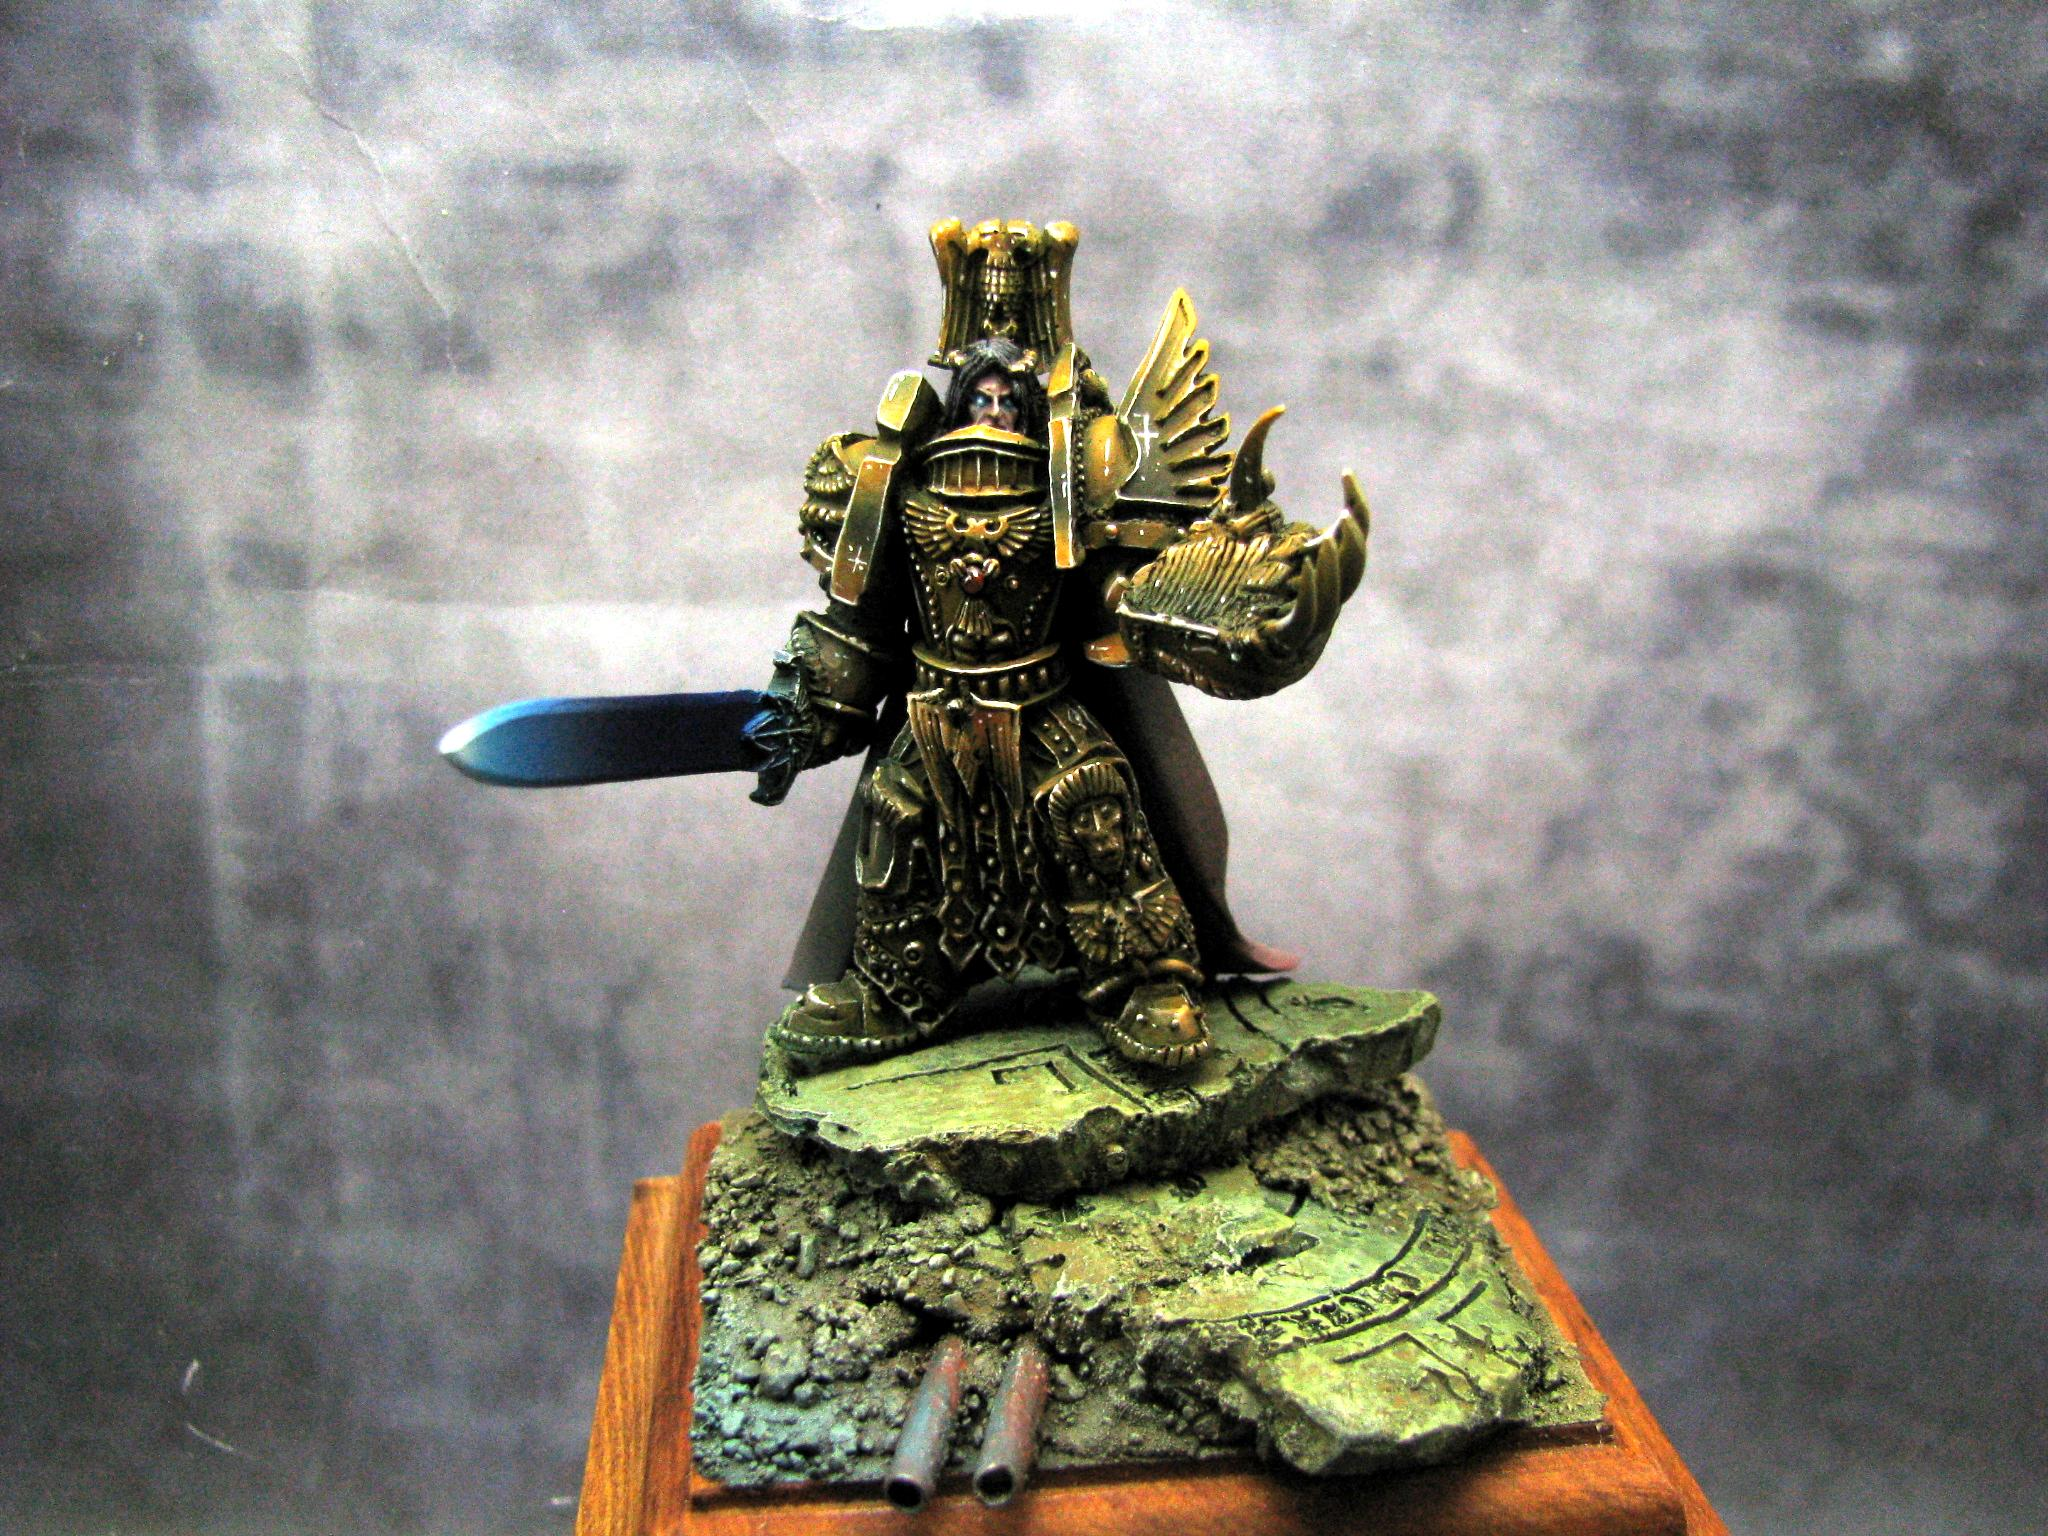 Awesome, Emperor, Horus Heresy, Imperial, Painted, Power Armour, Power Fist, Power Weapon, Pre-heresy, Rubble, Ruins, Warhammer 40,000